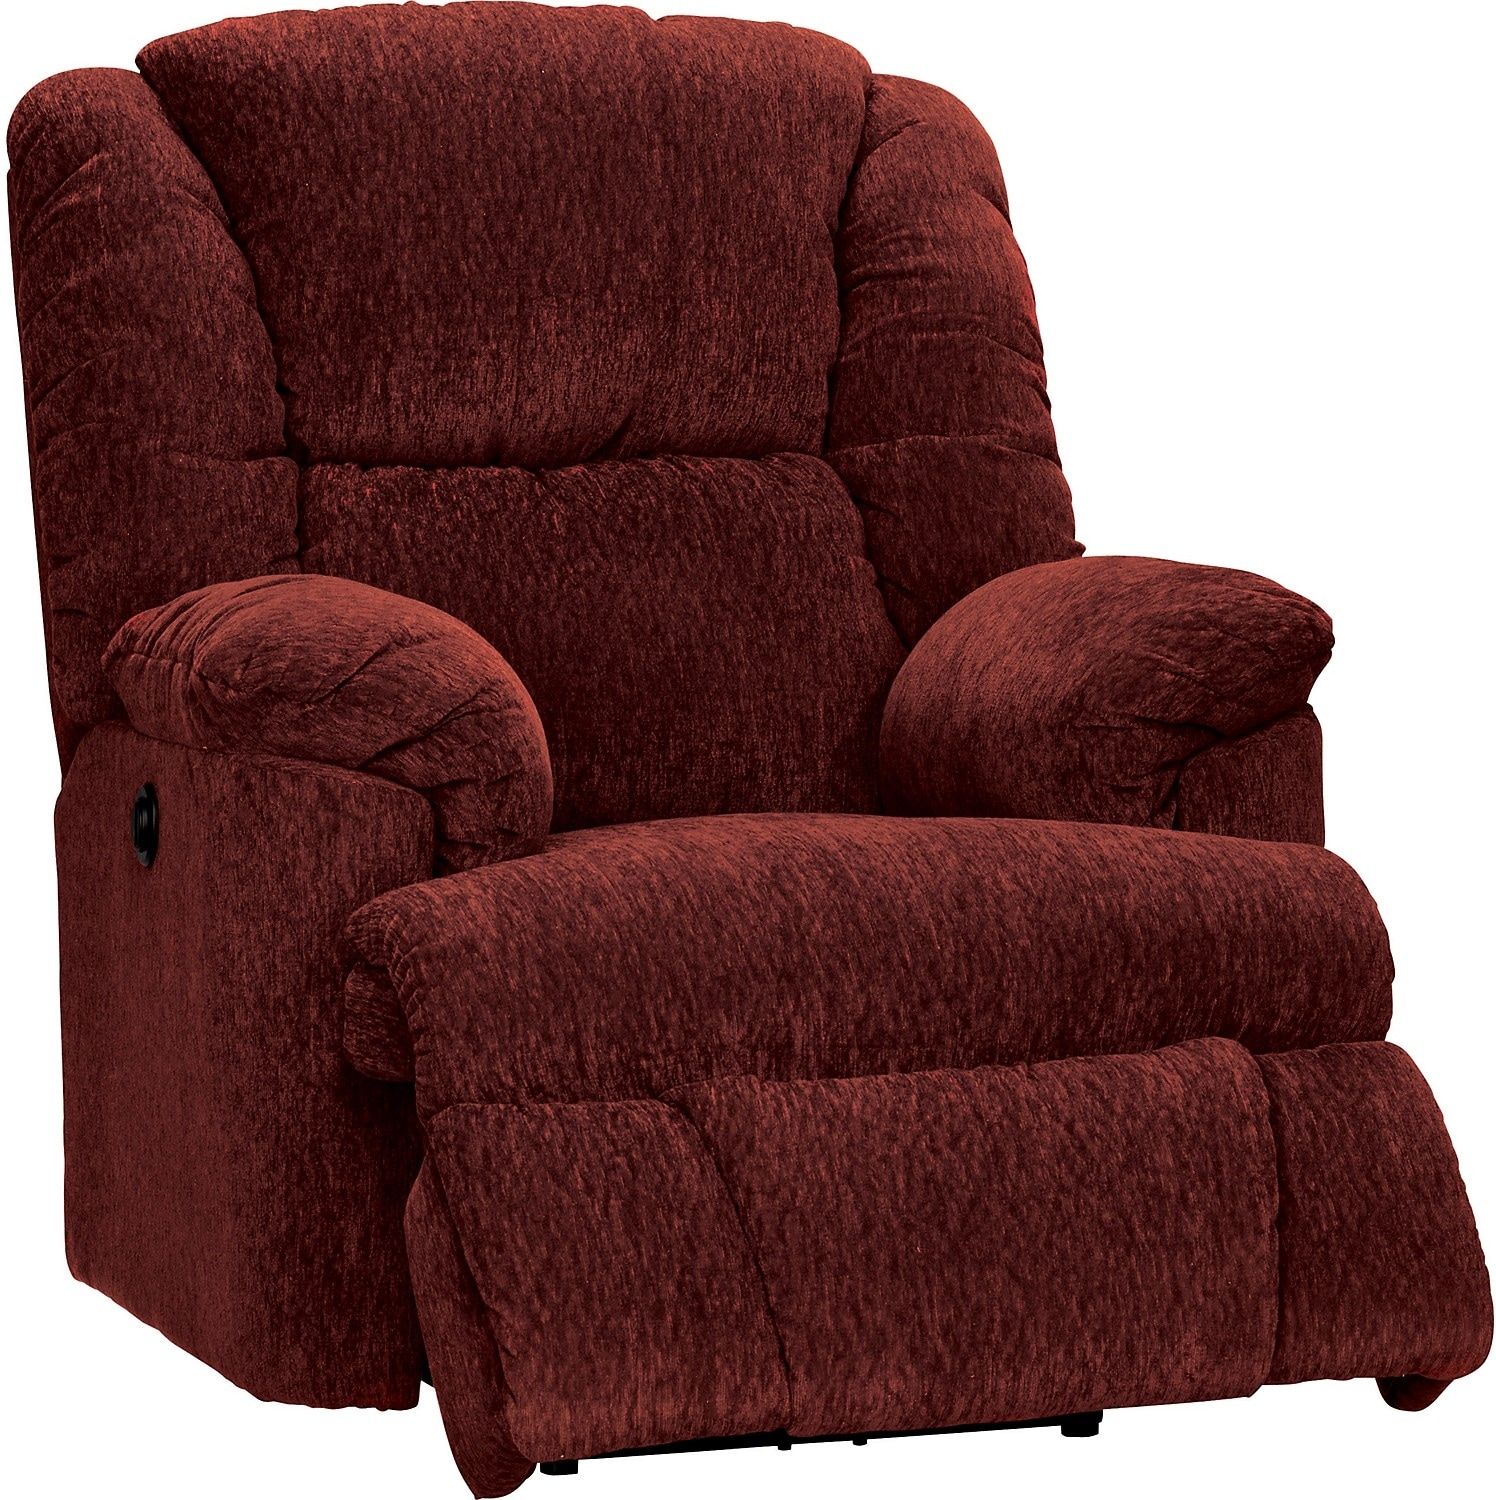 Living Room Furniture - Bmaxx Red Chenille Power Recliner